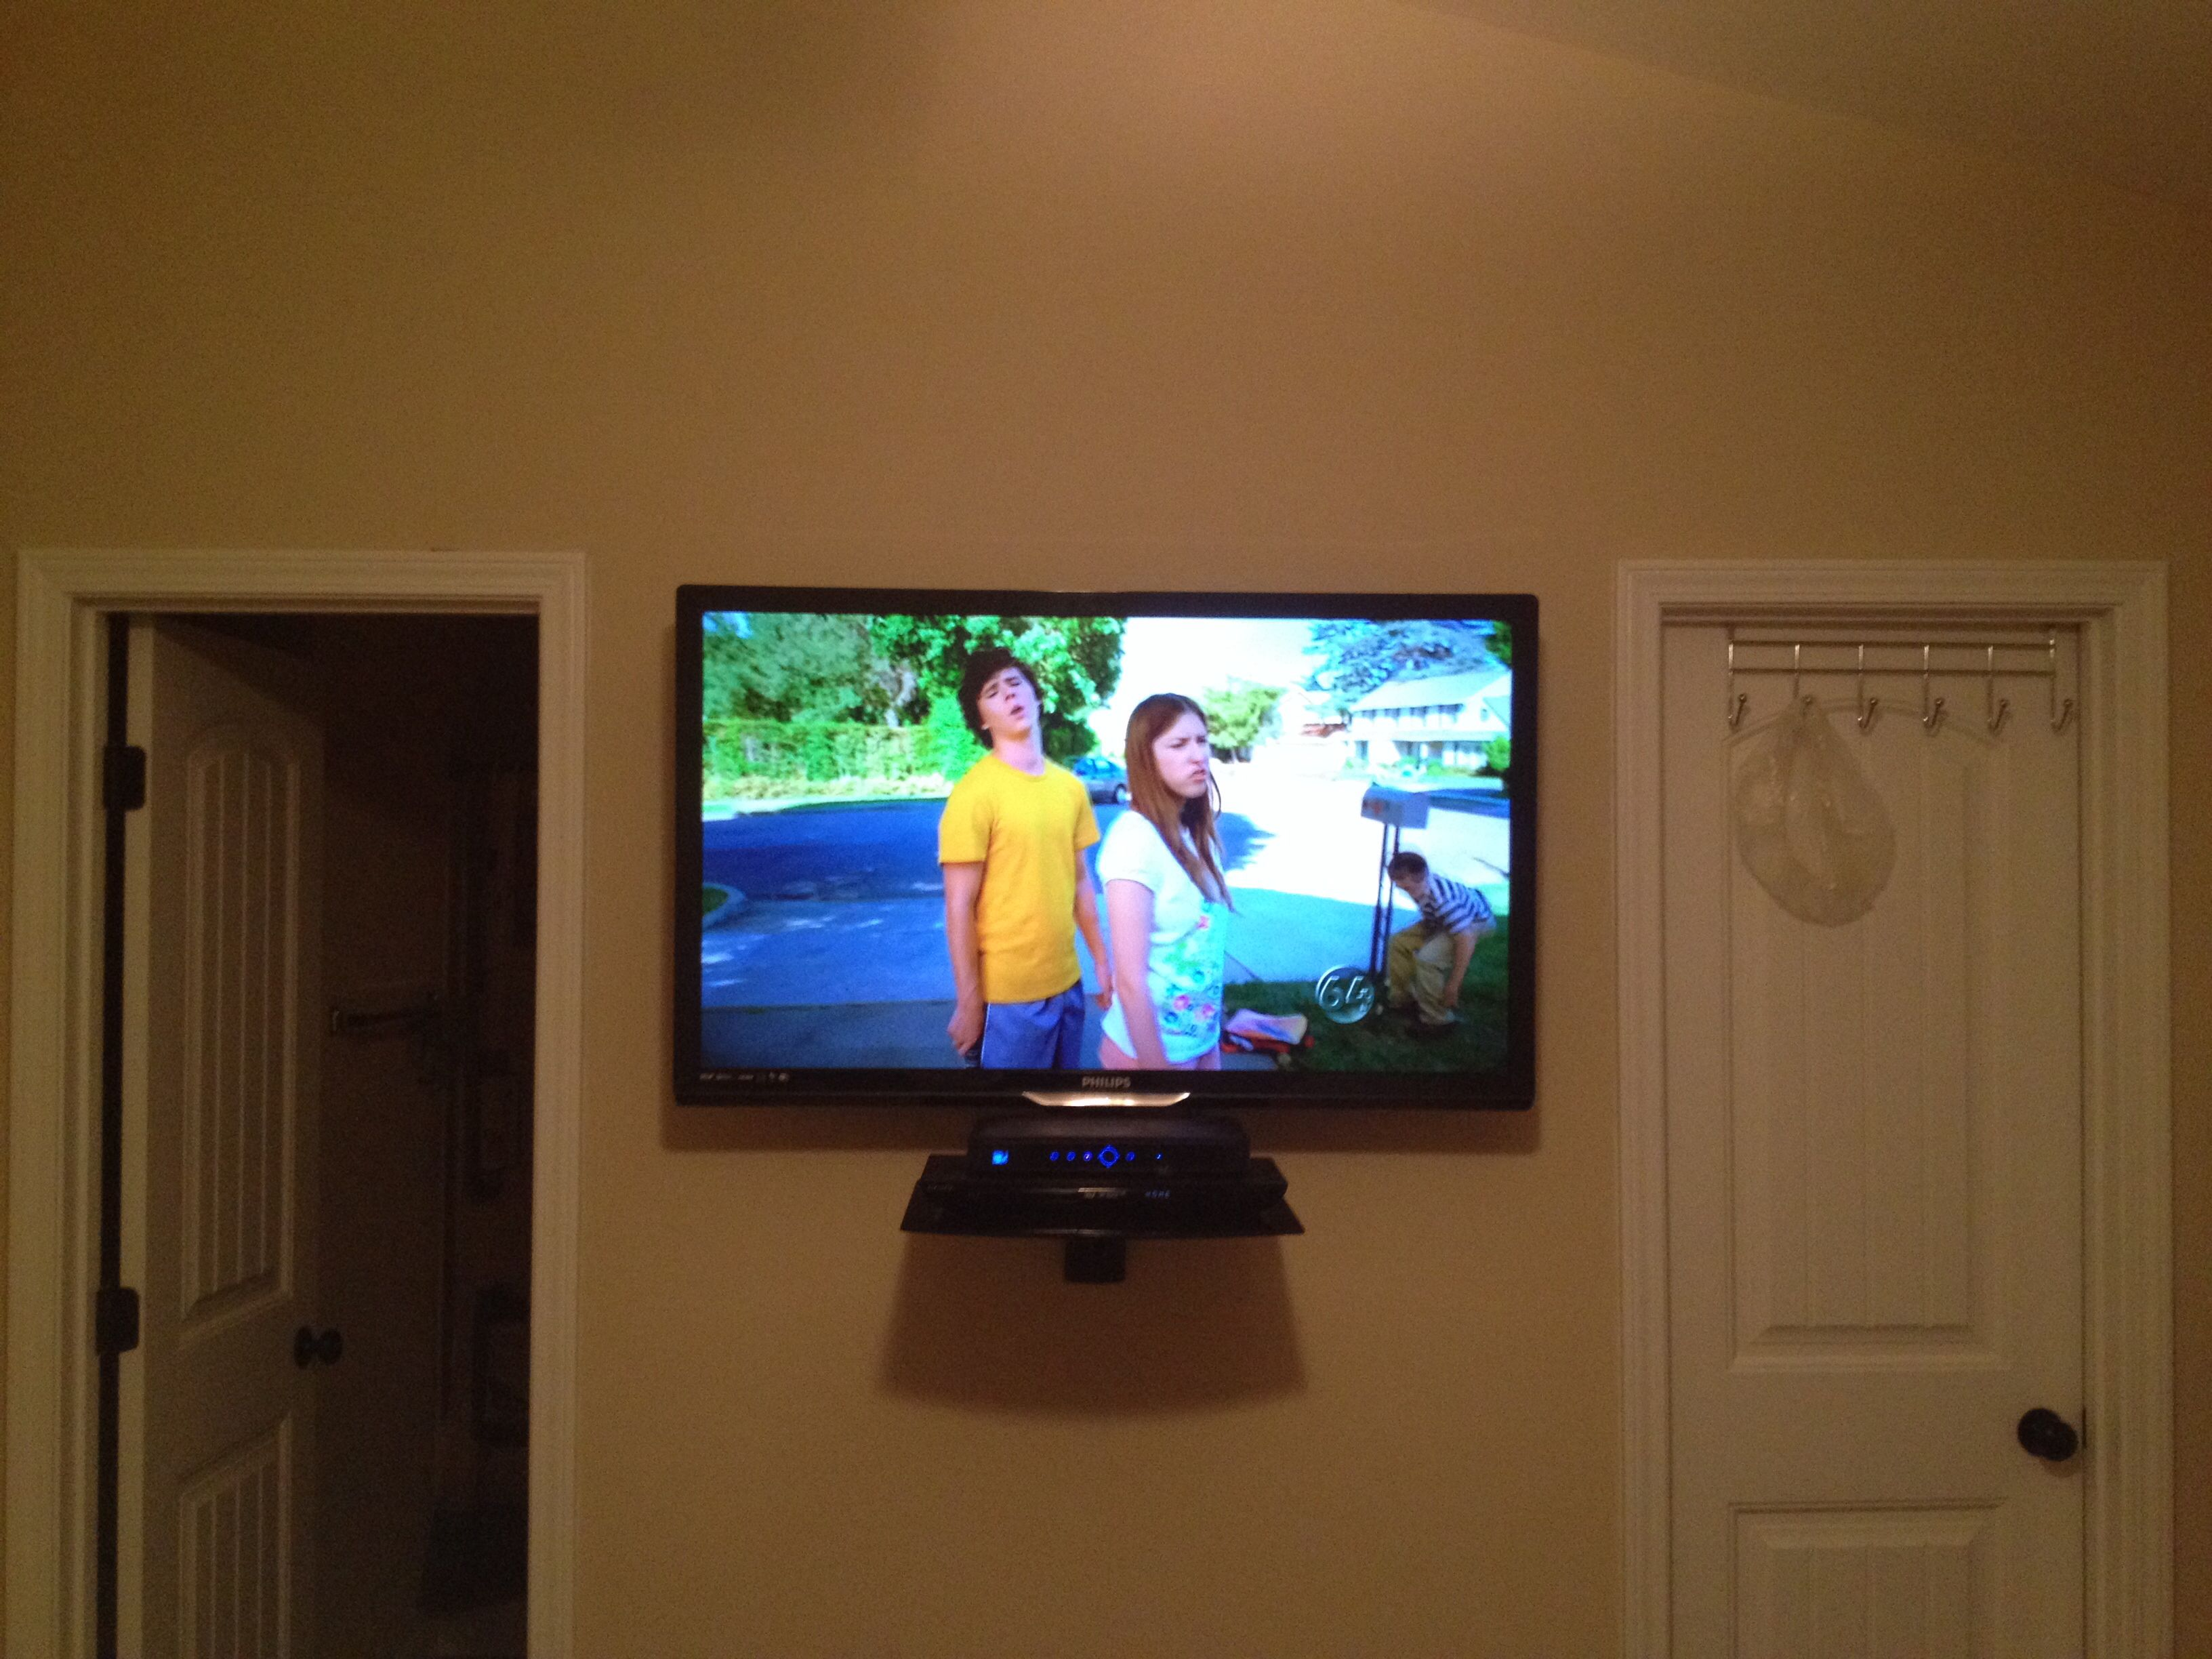 Led Tv Wall Mount Installation With Floating Gl Shelf For Cable Box And Bluray Dvd